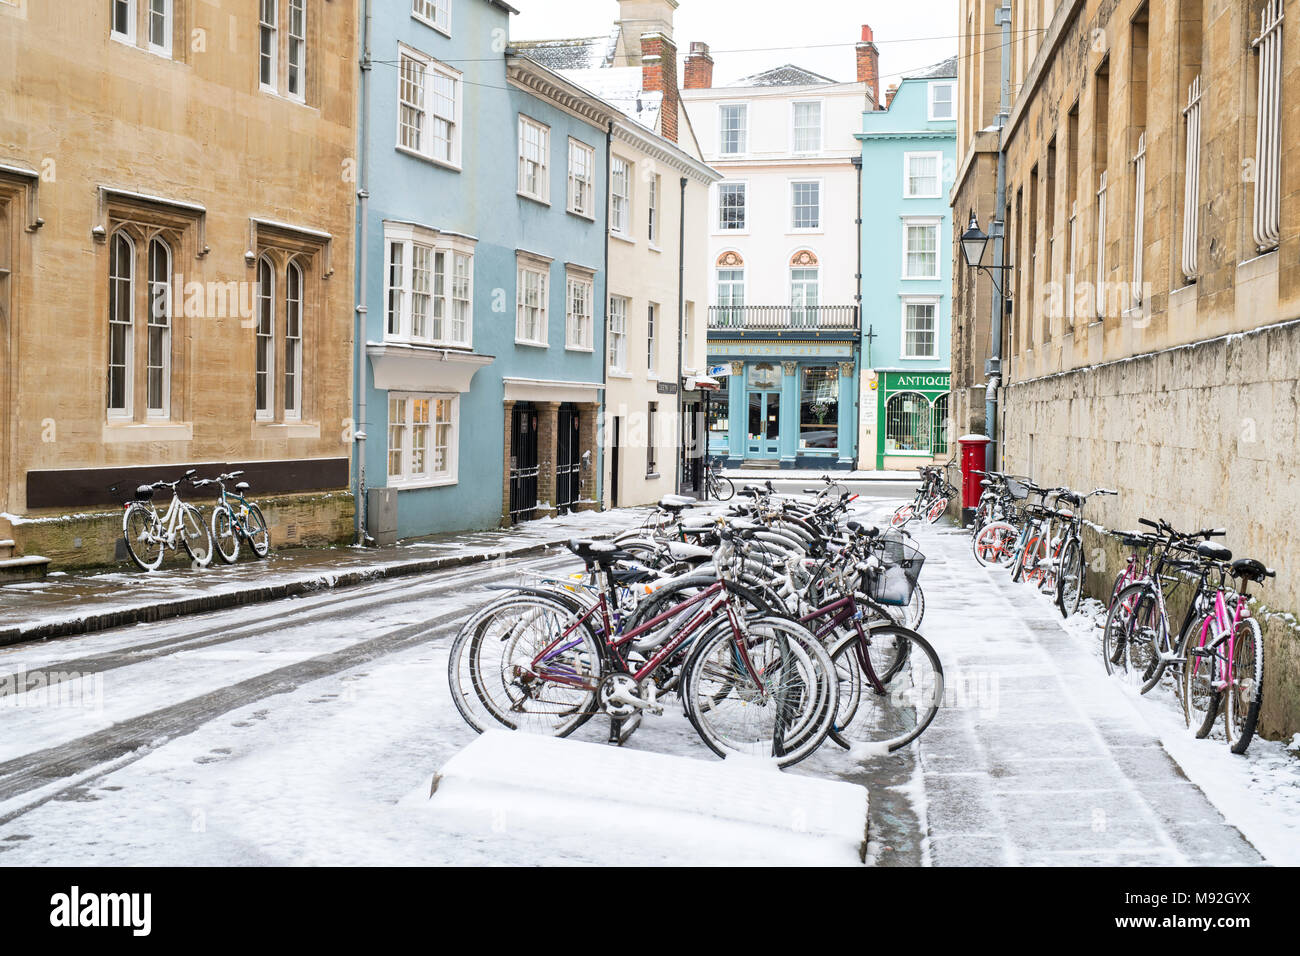 Students bicycles in Queens lane in the early morning snow. Oxford, Oxfordshire, England - Stock Image